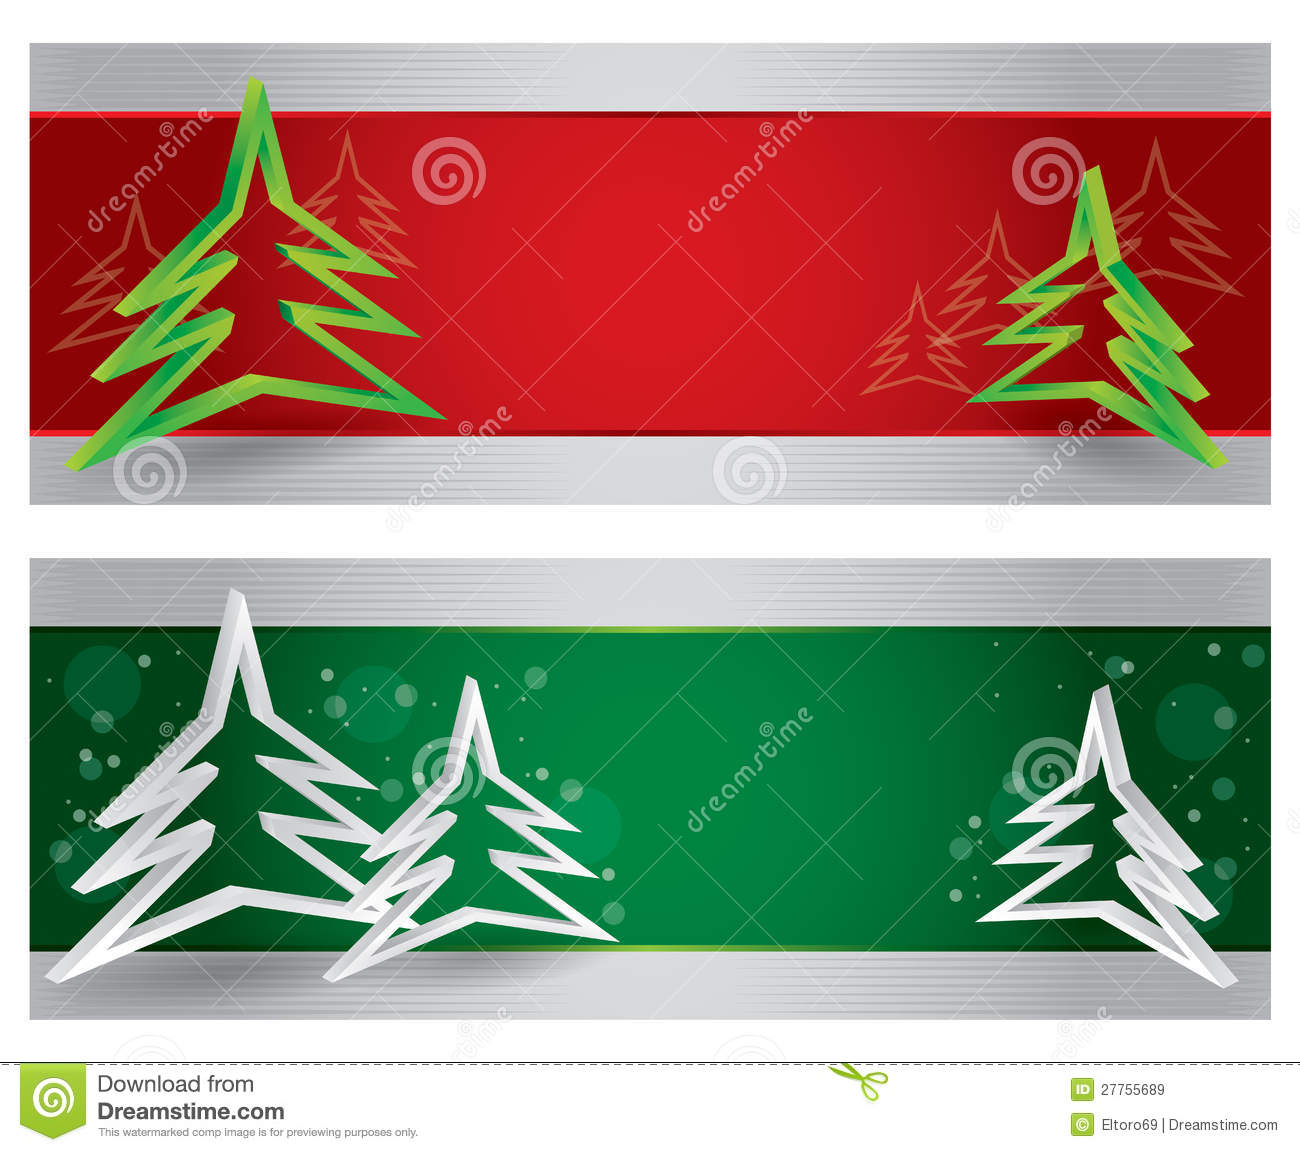 Free banner images for website - Abstract Background Banner Christmas Header Merry Website